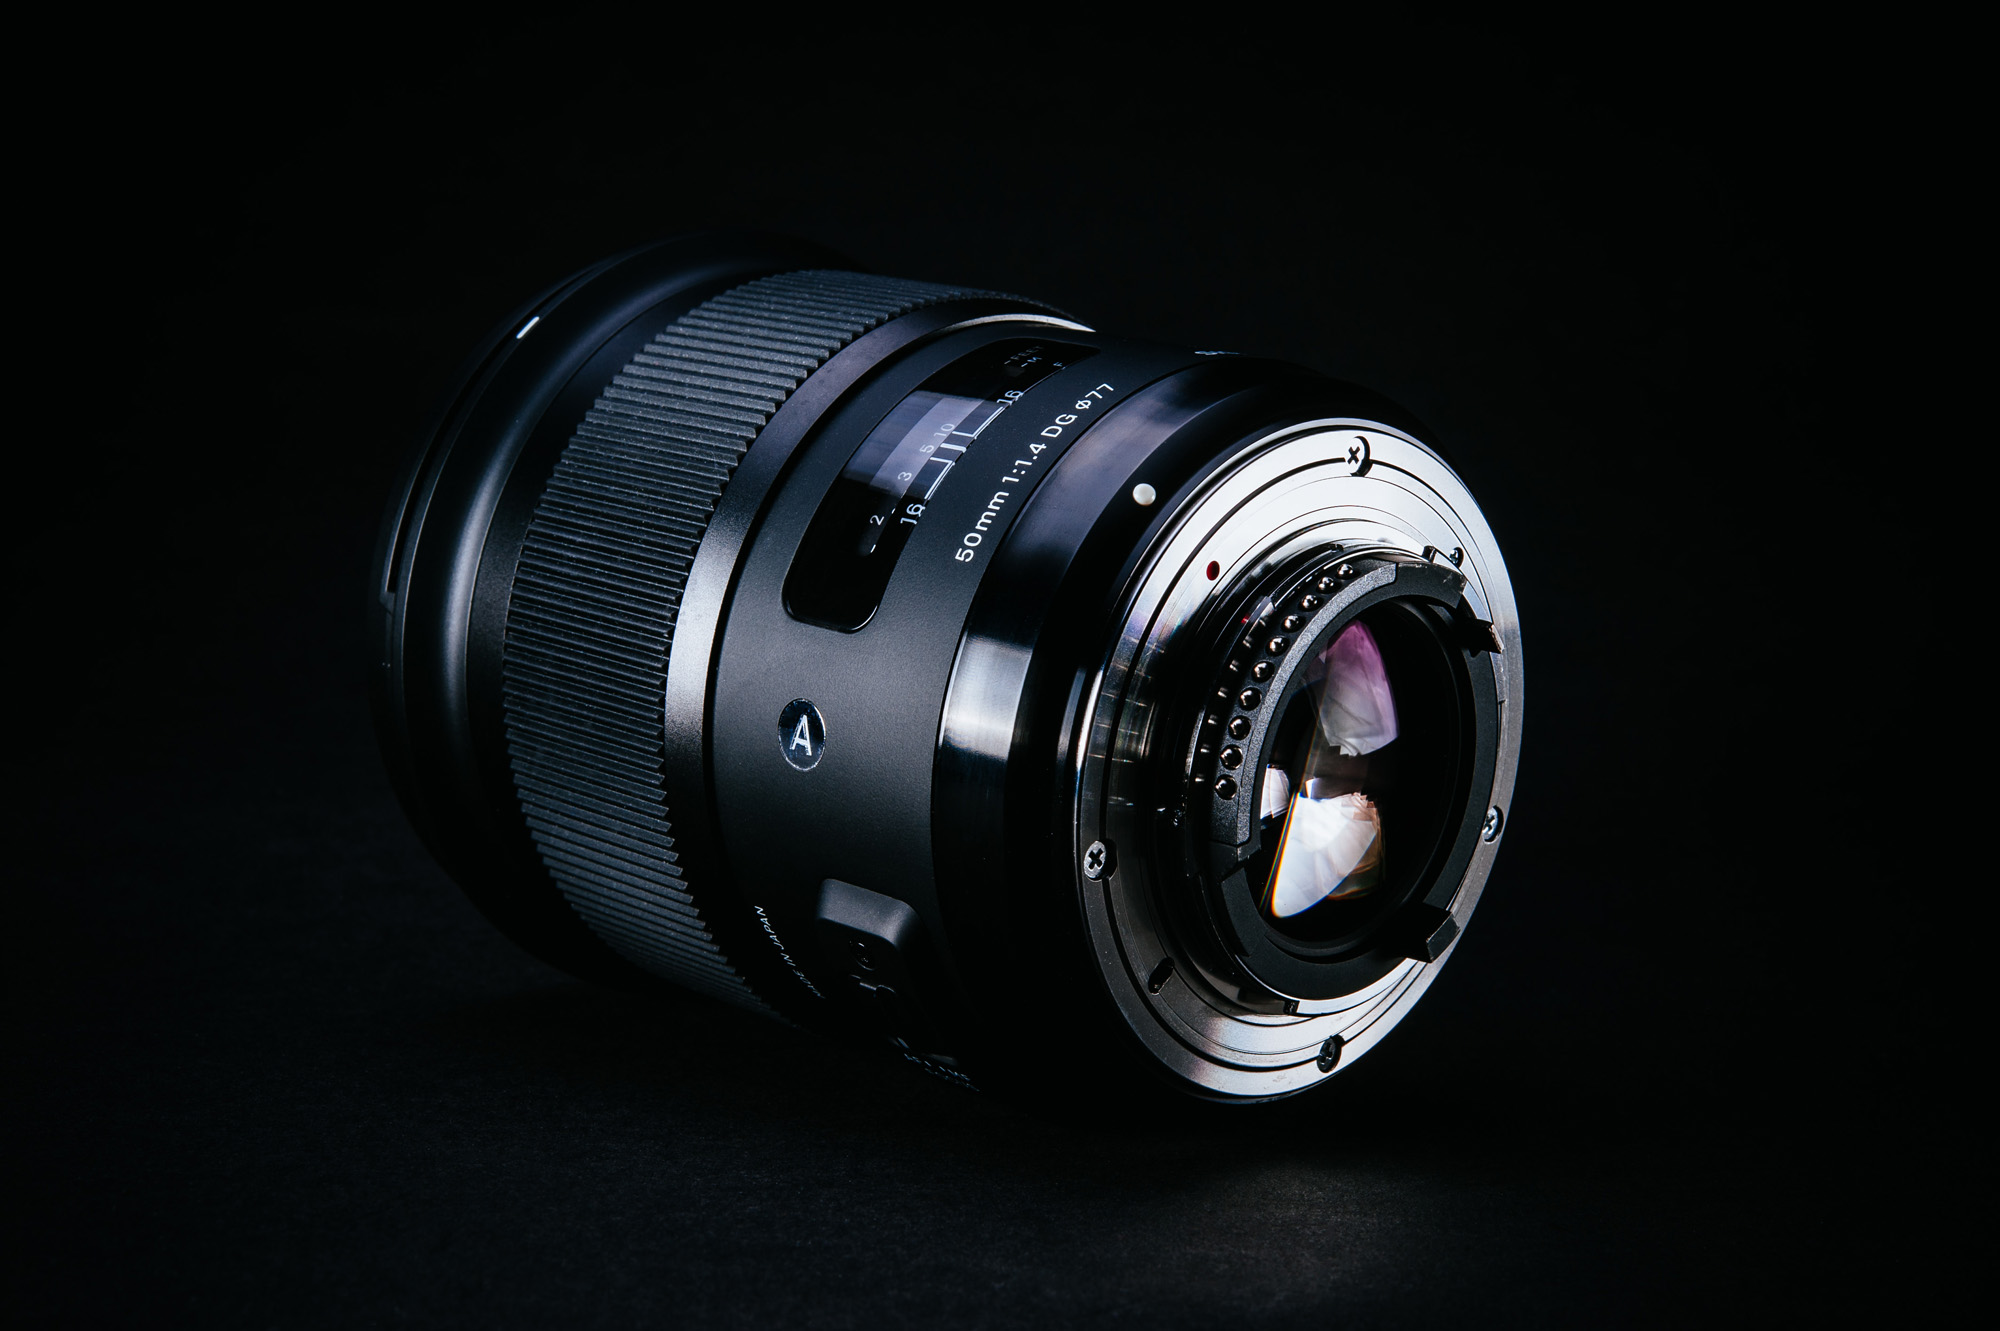 sigma-50mm-f-1.4-DG-HSM-ART-review-02